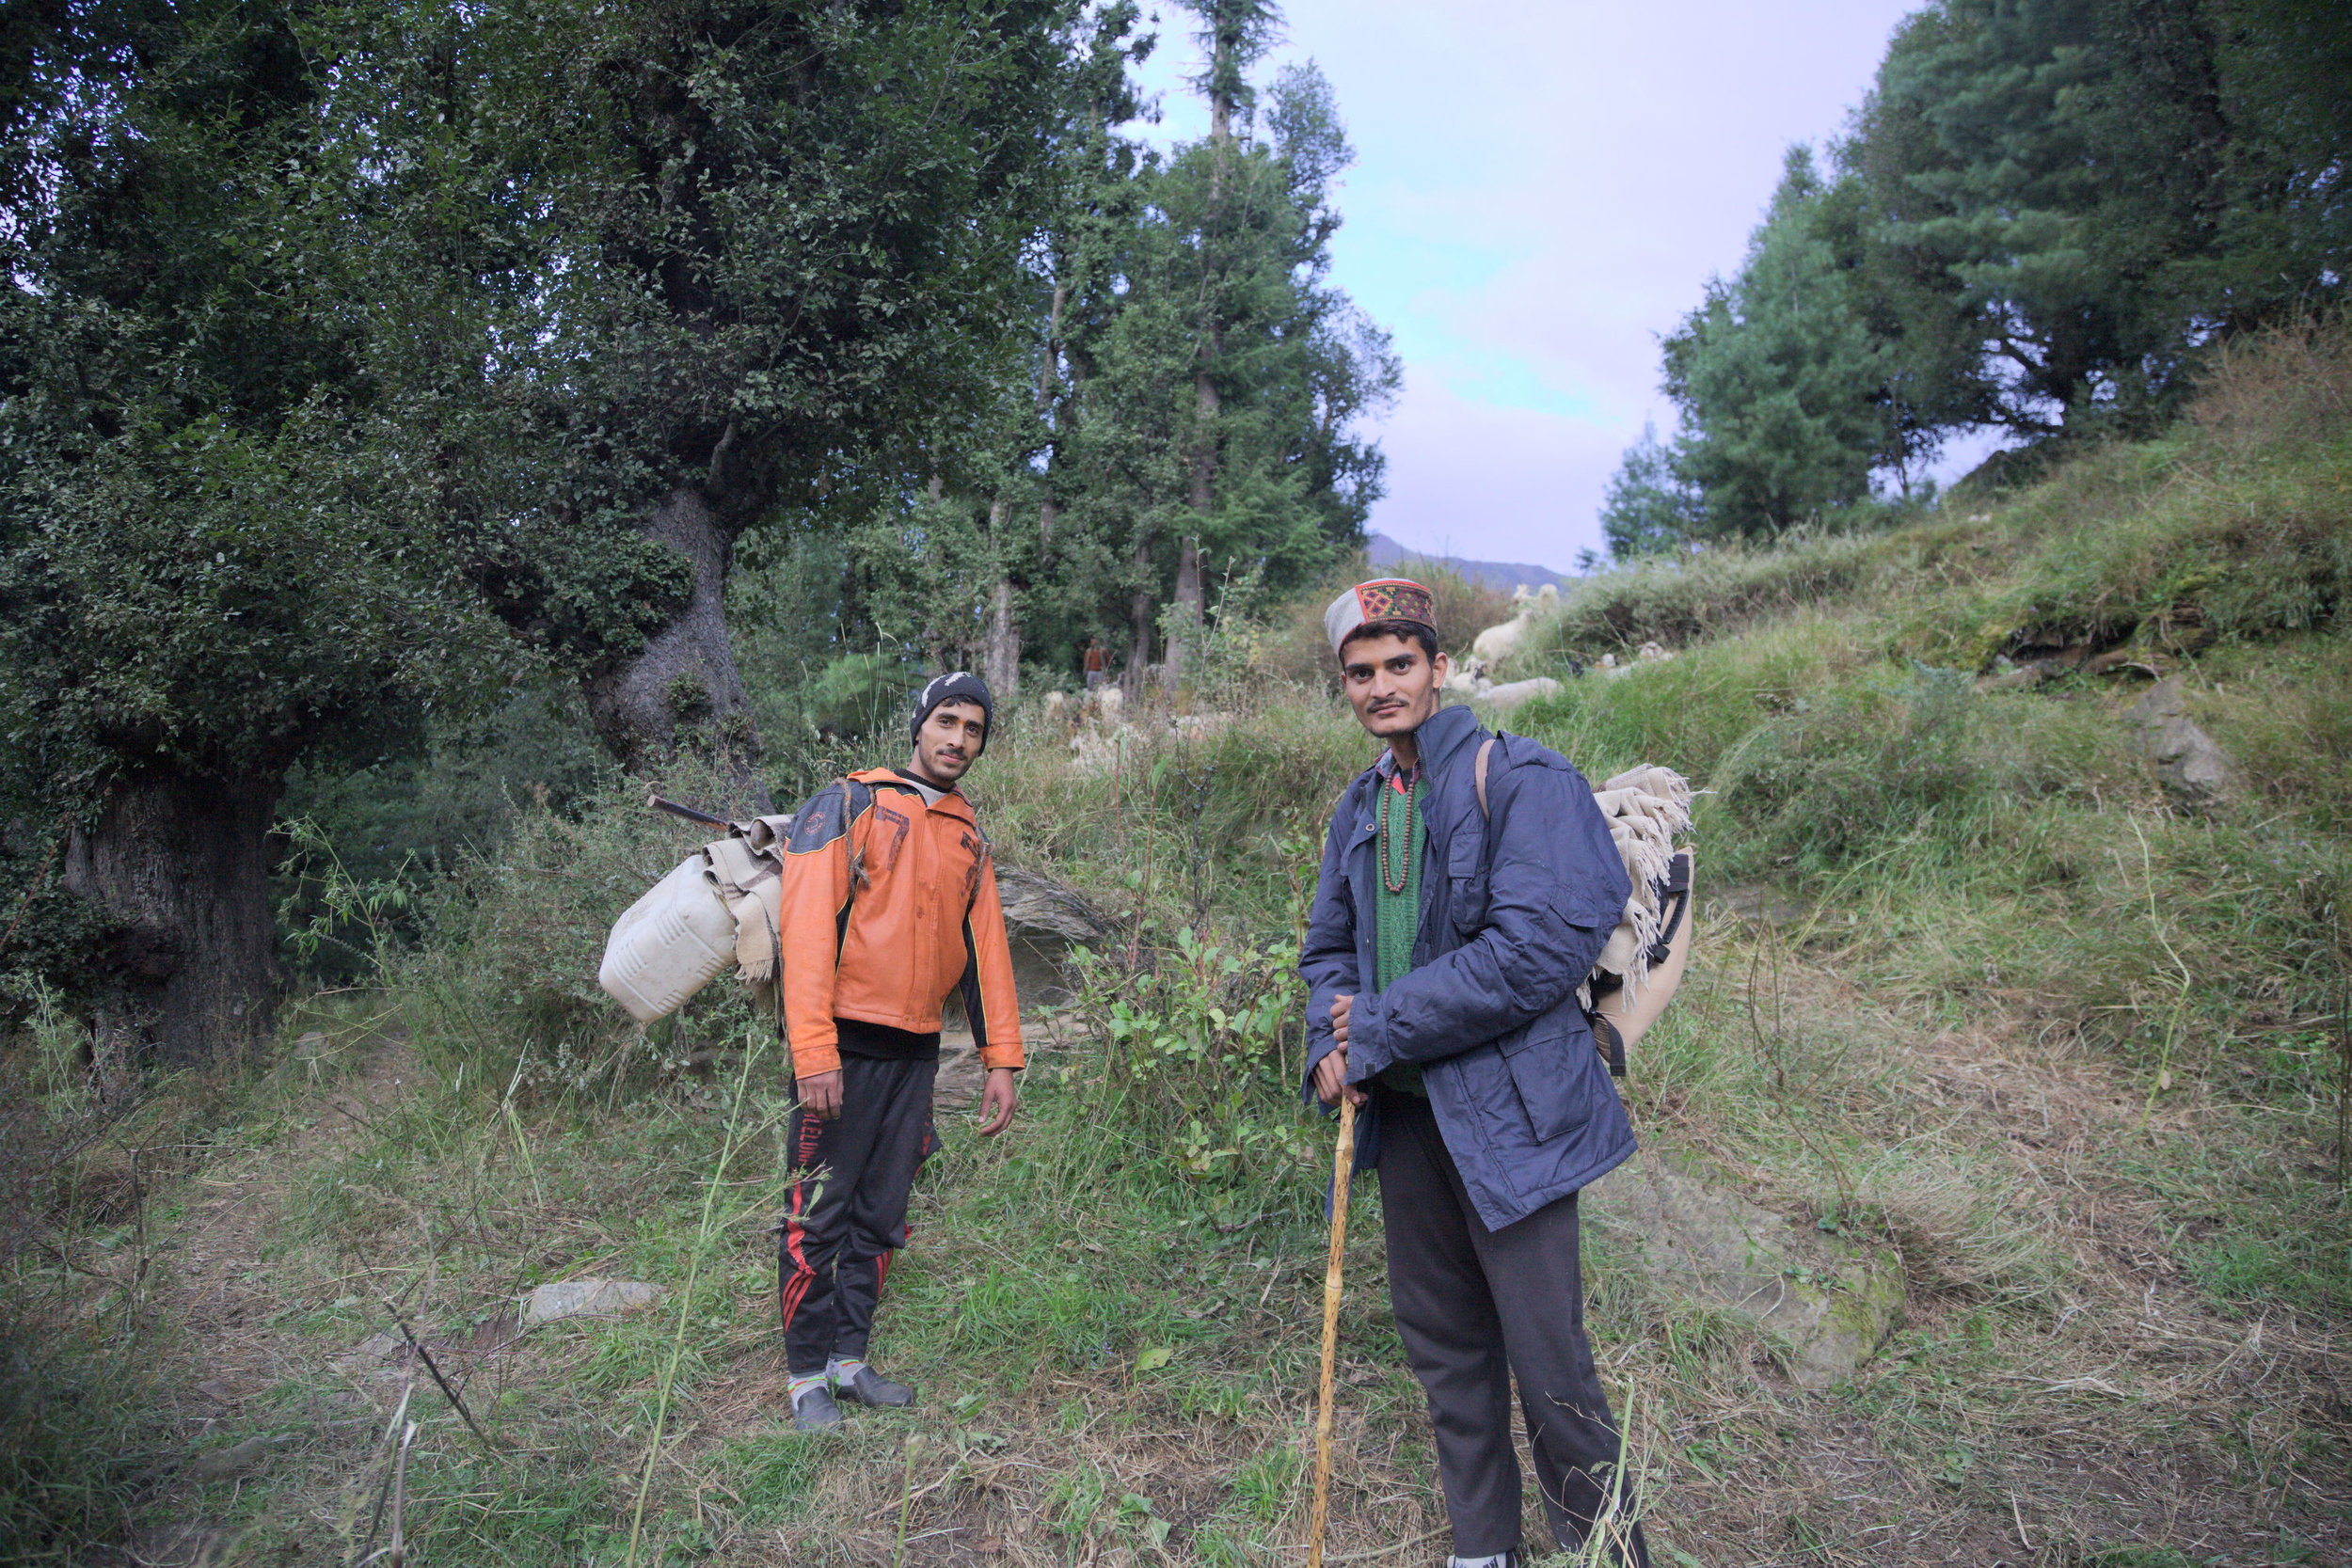 Two Gaddi boys leaving Kuarsi village in Chamba with their flock. Gaddis move between the southern plains of Punjab in the winter, and the high-altitude valleys of Lahaul and Spiti in summer.